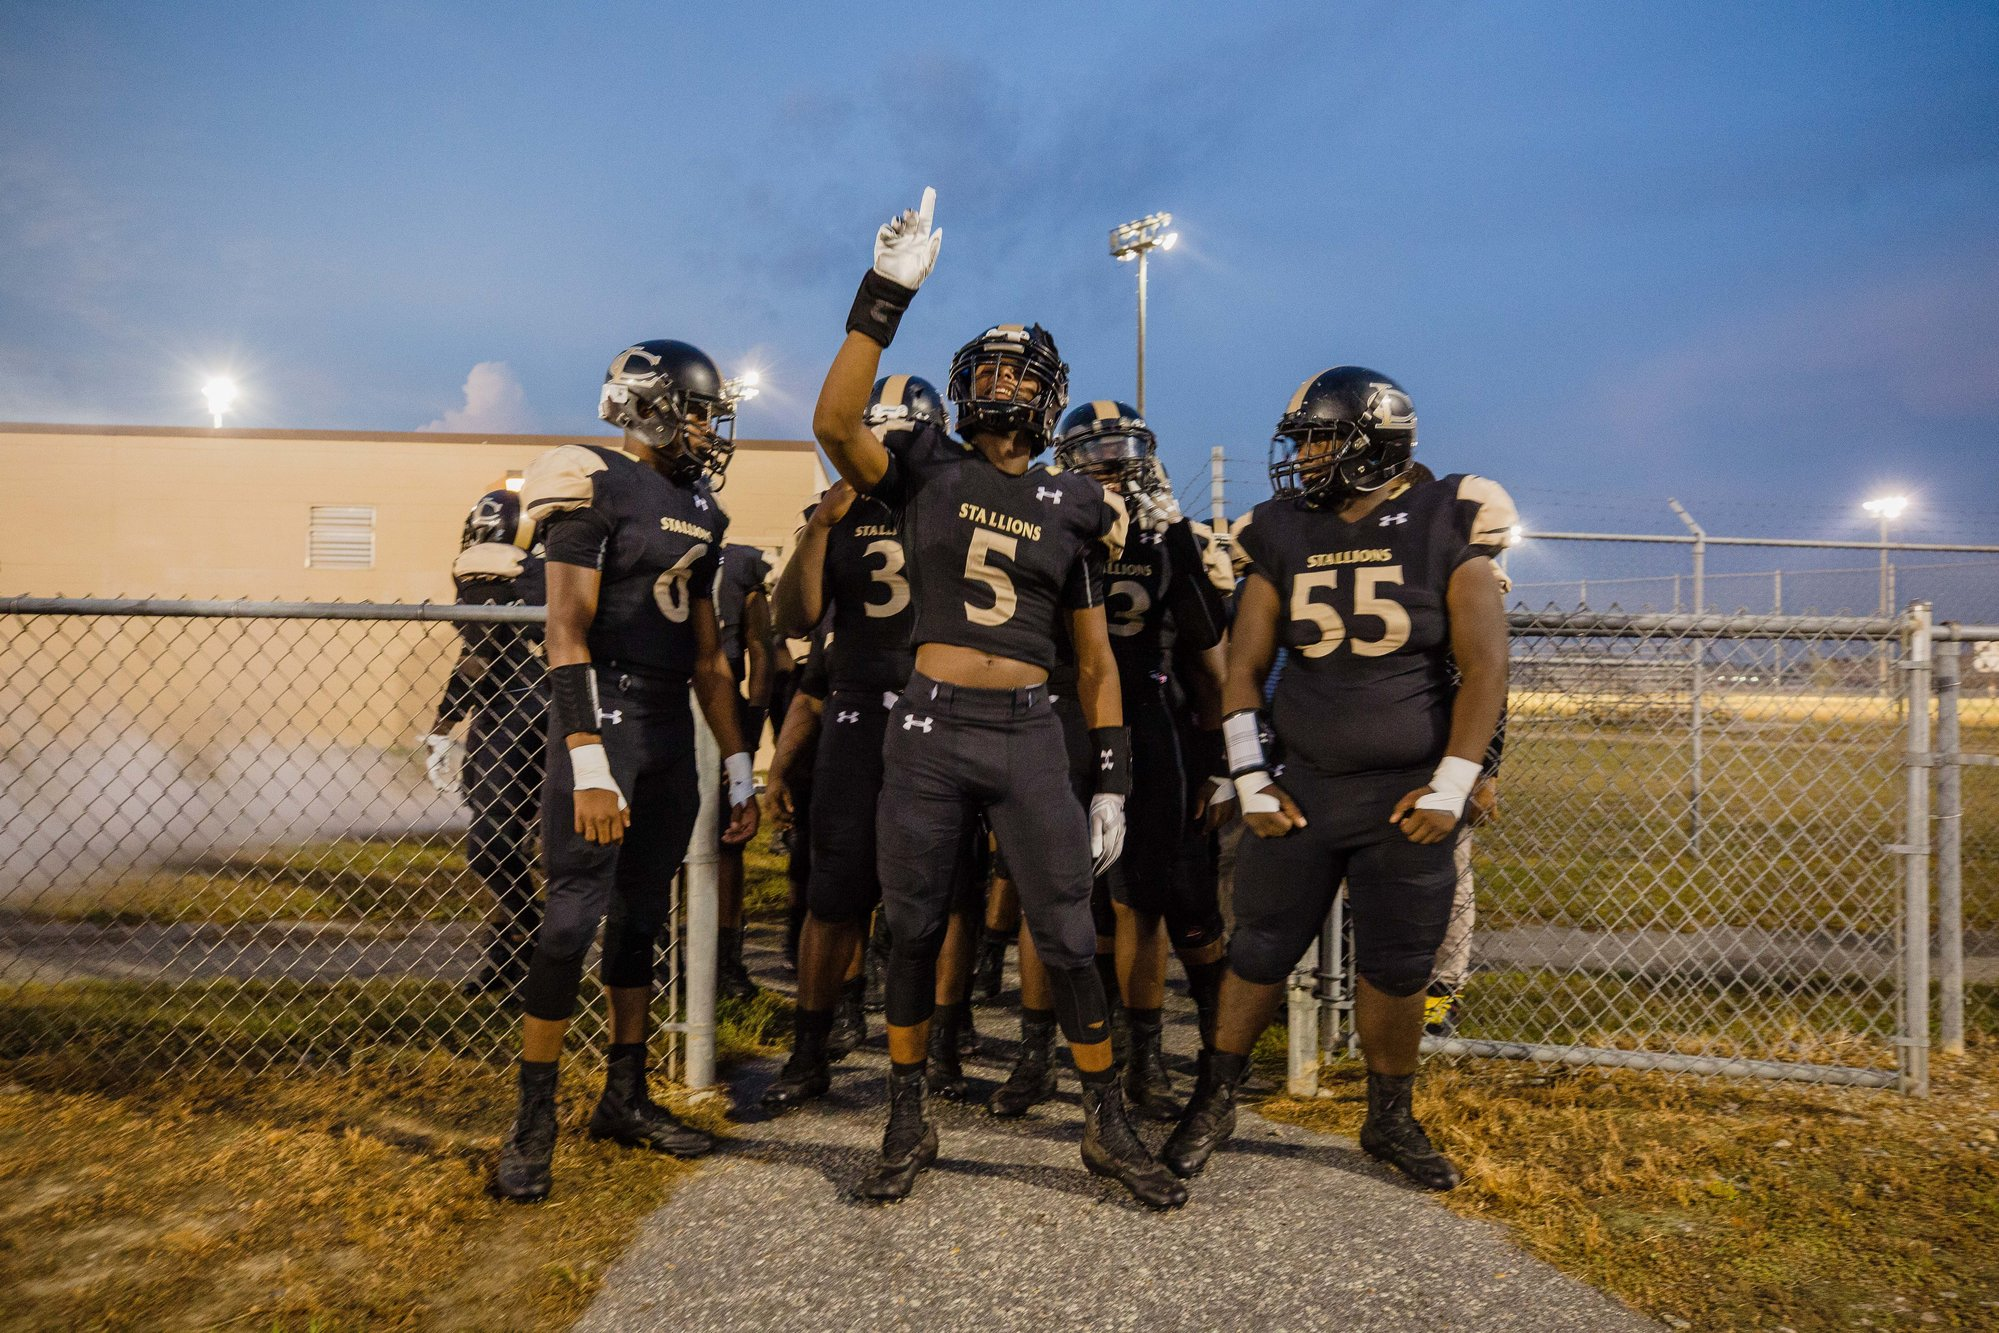 Lee Central High School will meet next week to discuss when its football team can return to action after sports were put on hold by the coronavirus pandemic.